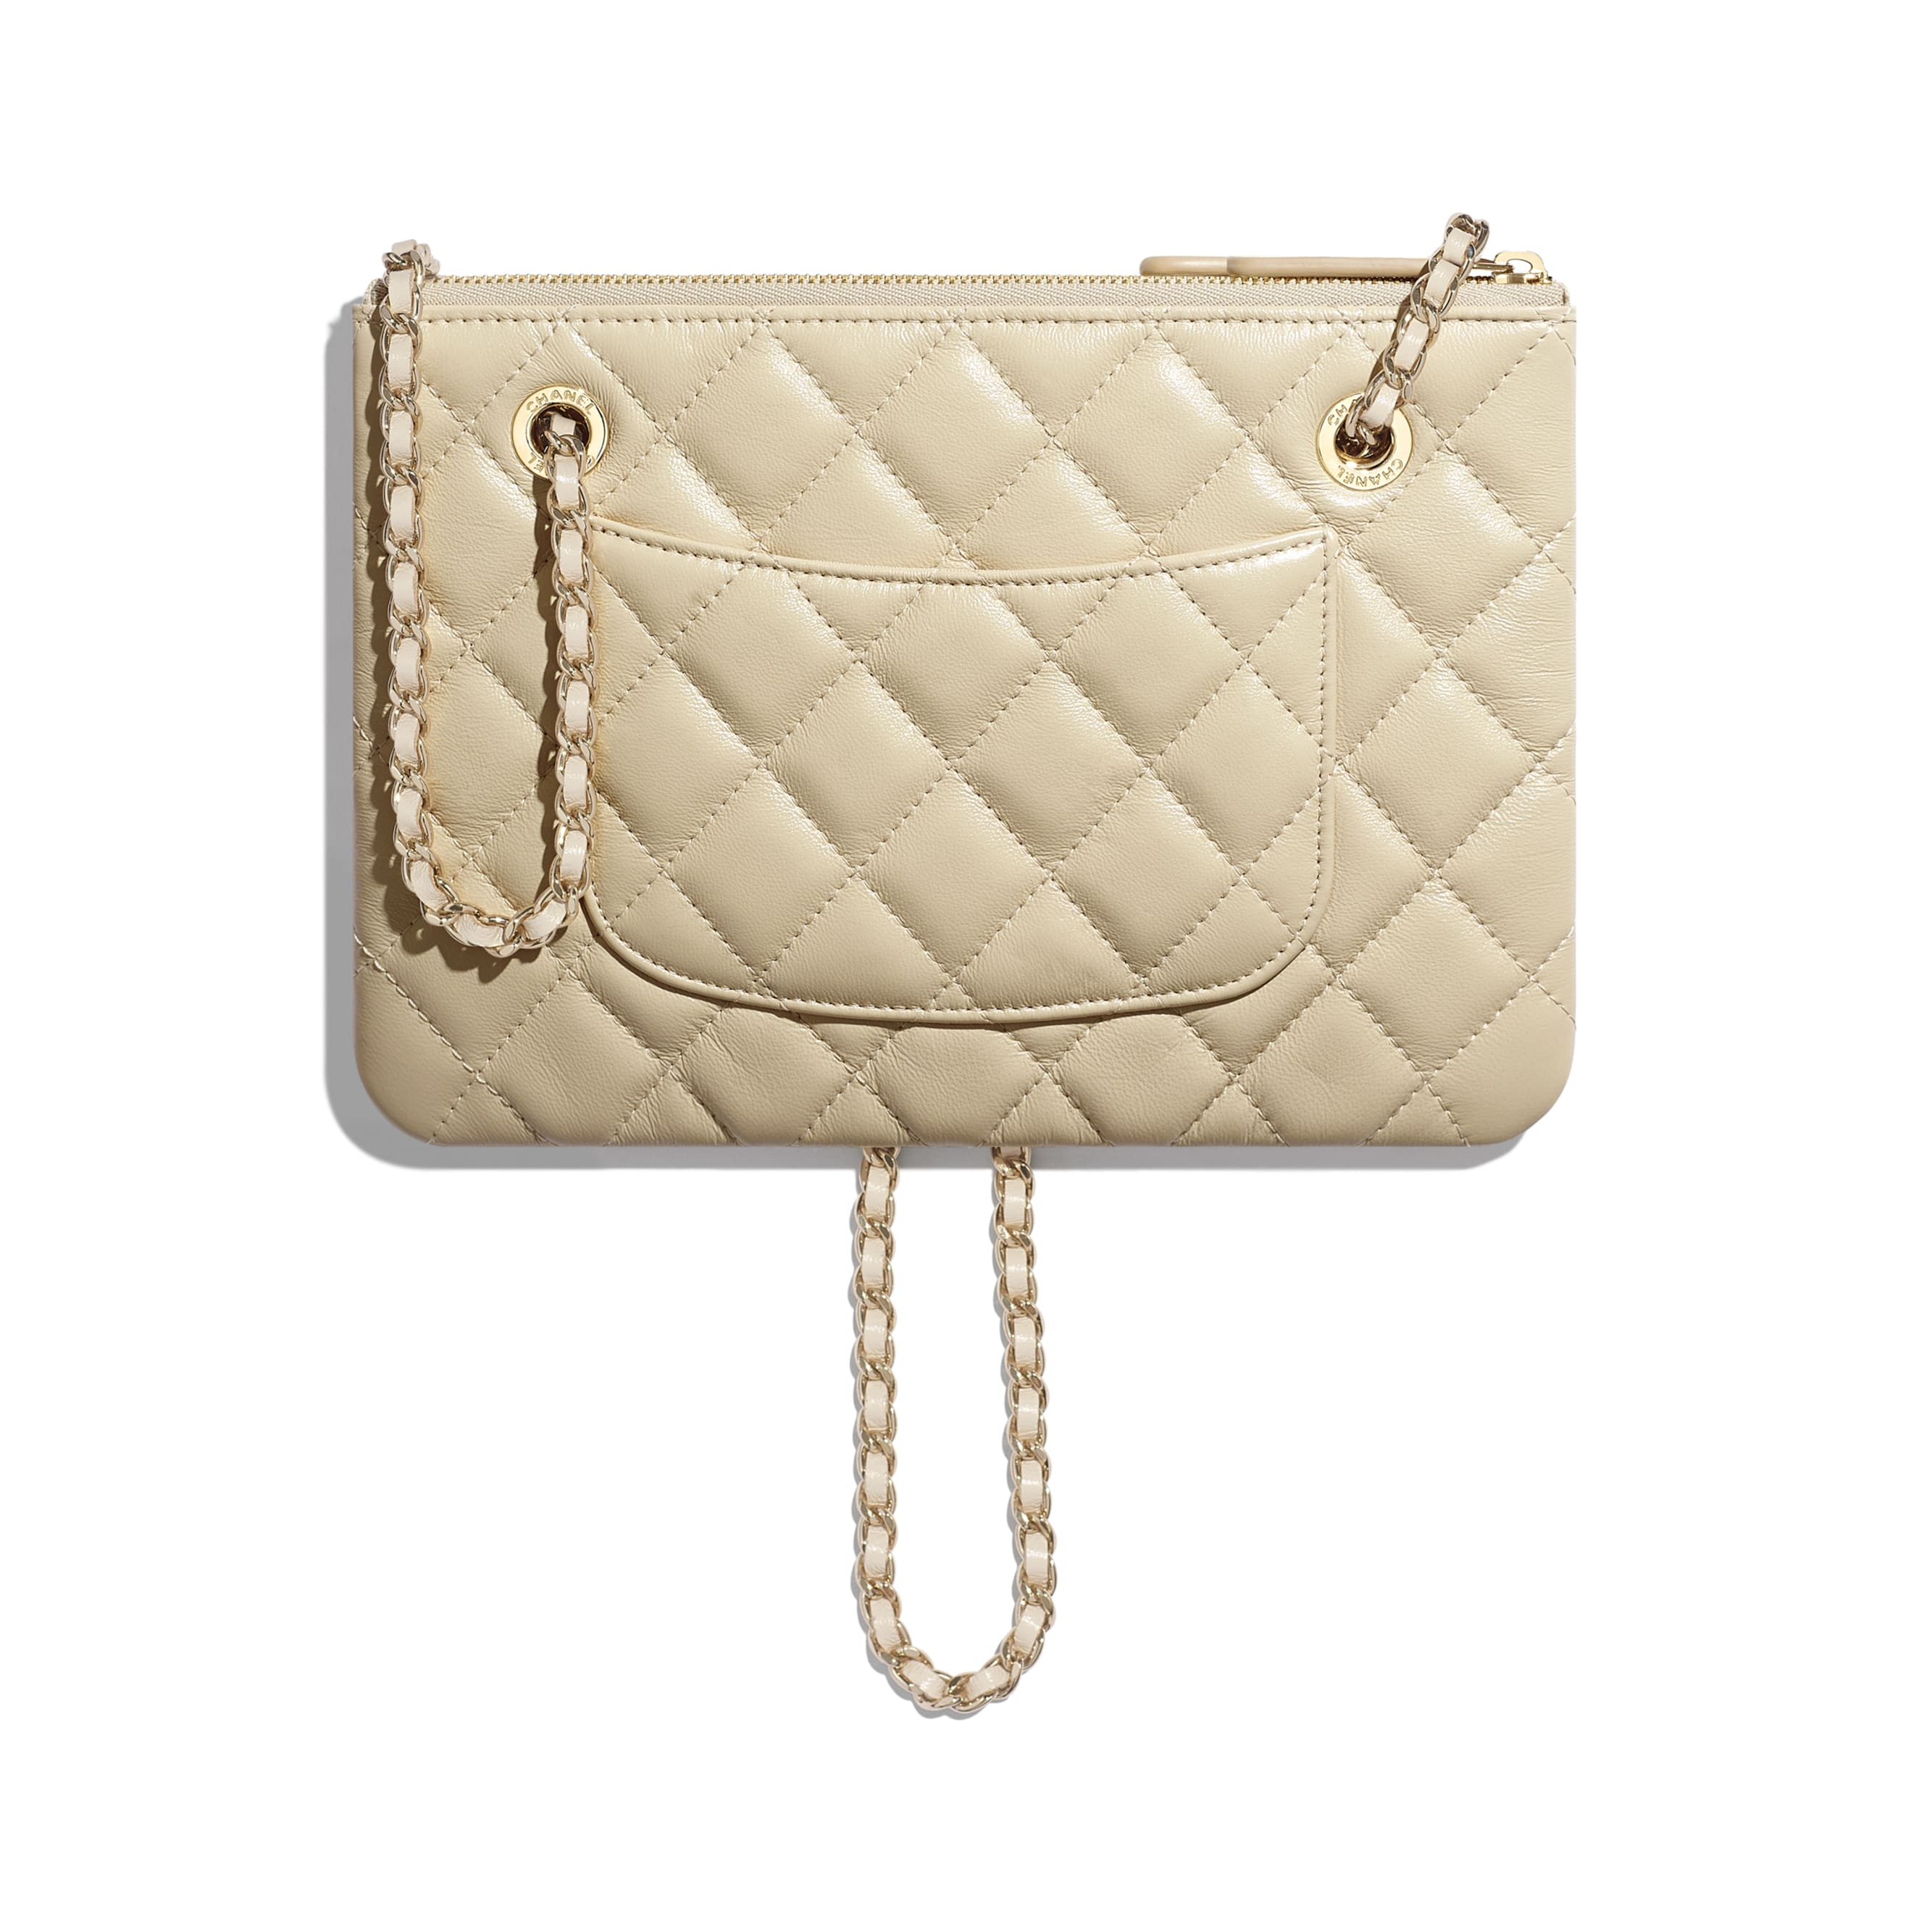 Clutch with Chain - Beige - Shiny Lambskin & Gold-Tone Metal - CHANEL - Alternative view - see standard sized version